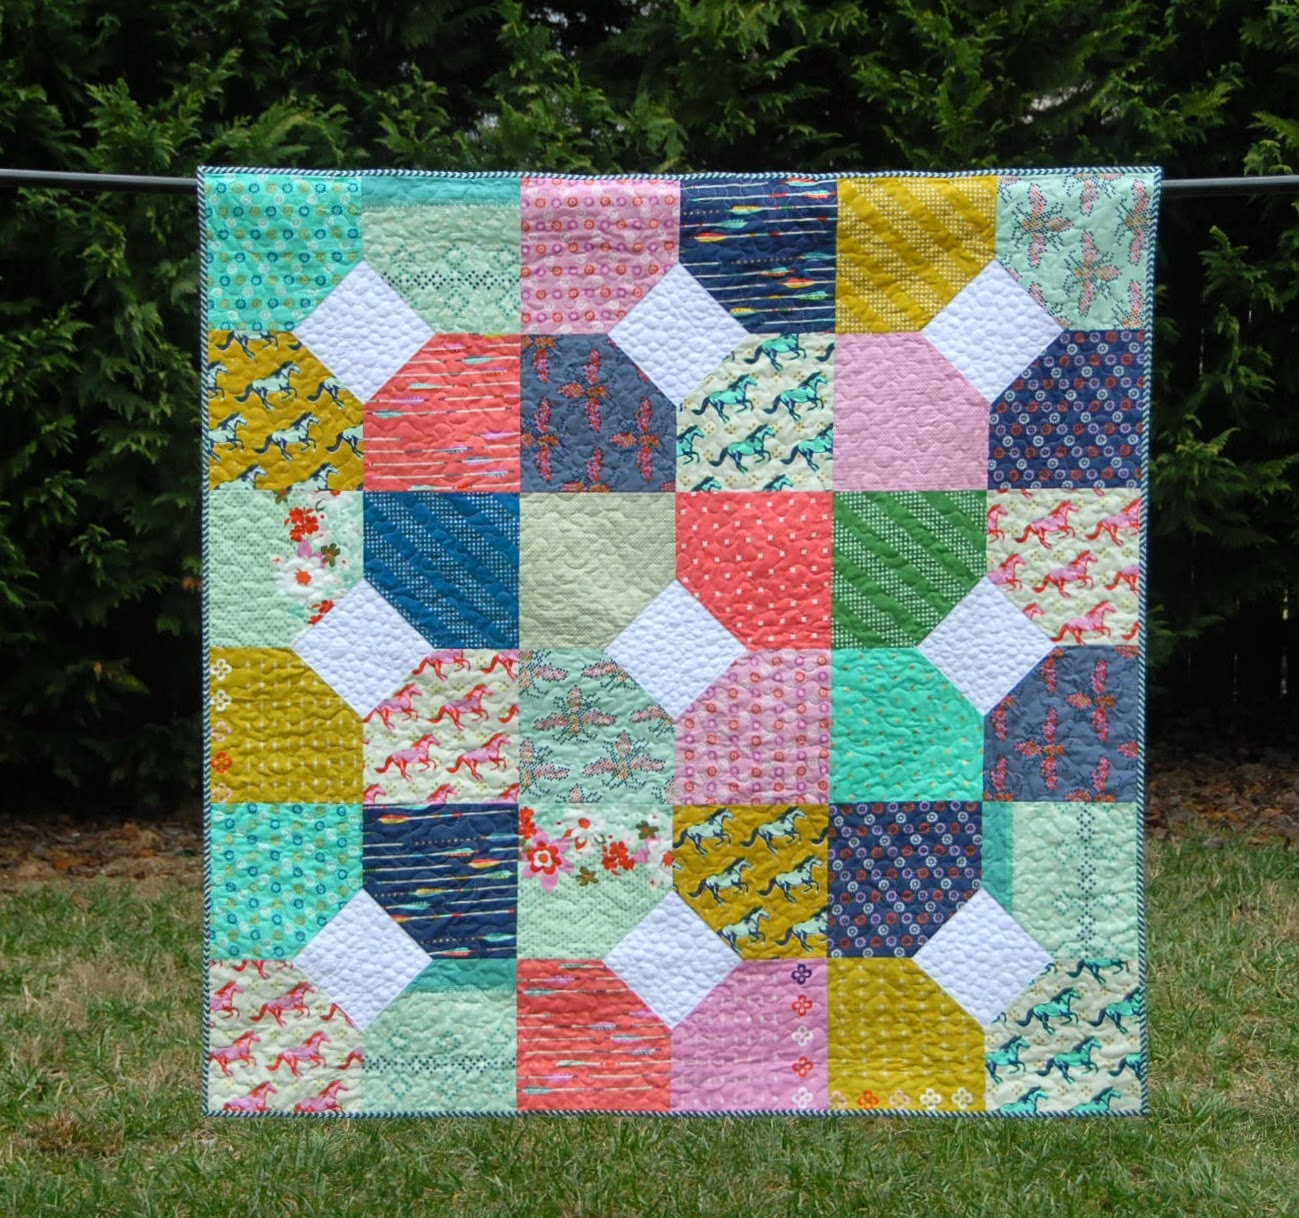 Free Layer Cake Quilt Patterns : layer cake quilt patterns - Adamdwight.com